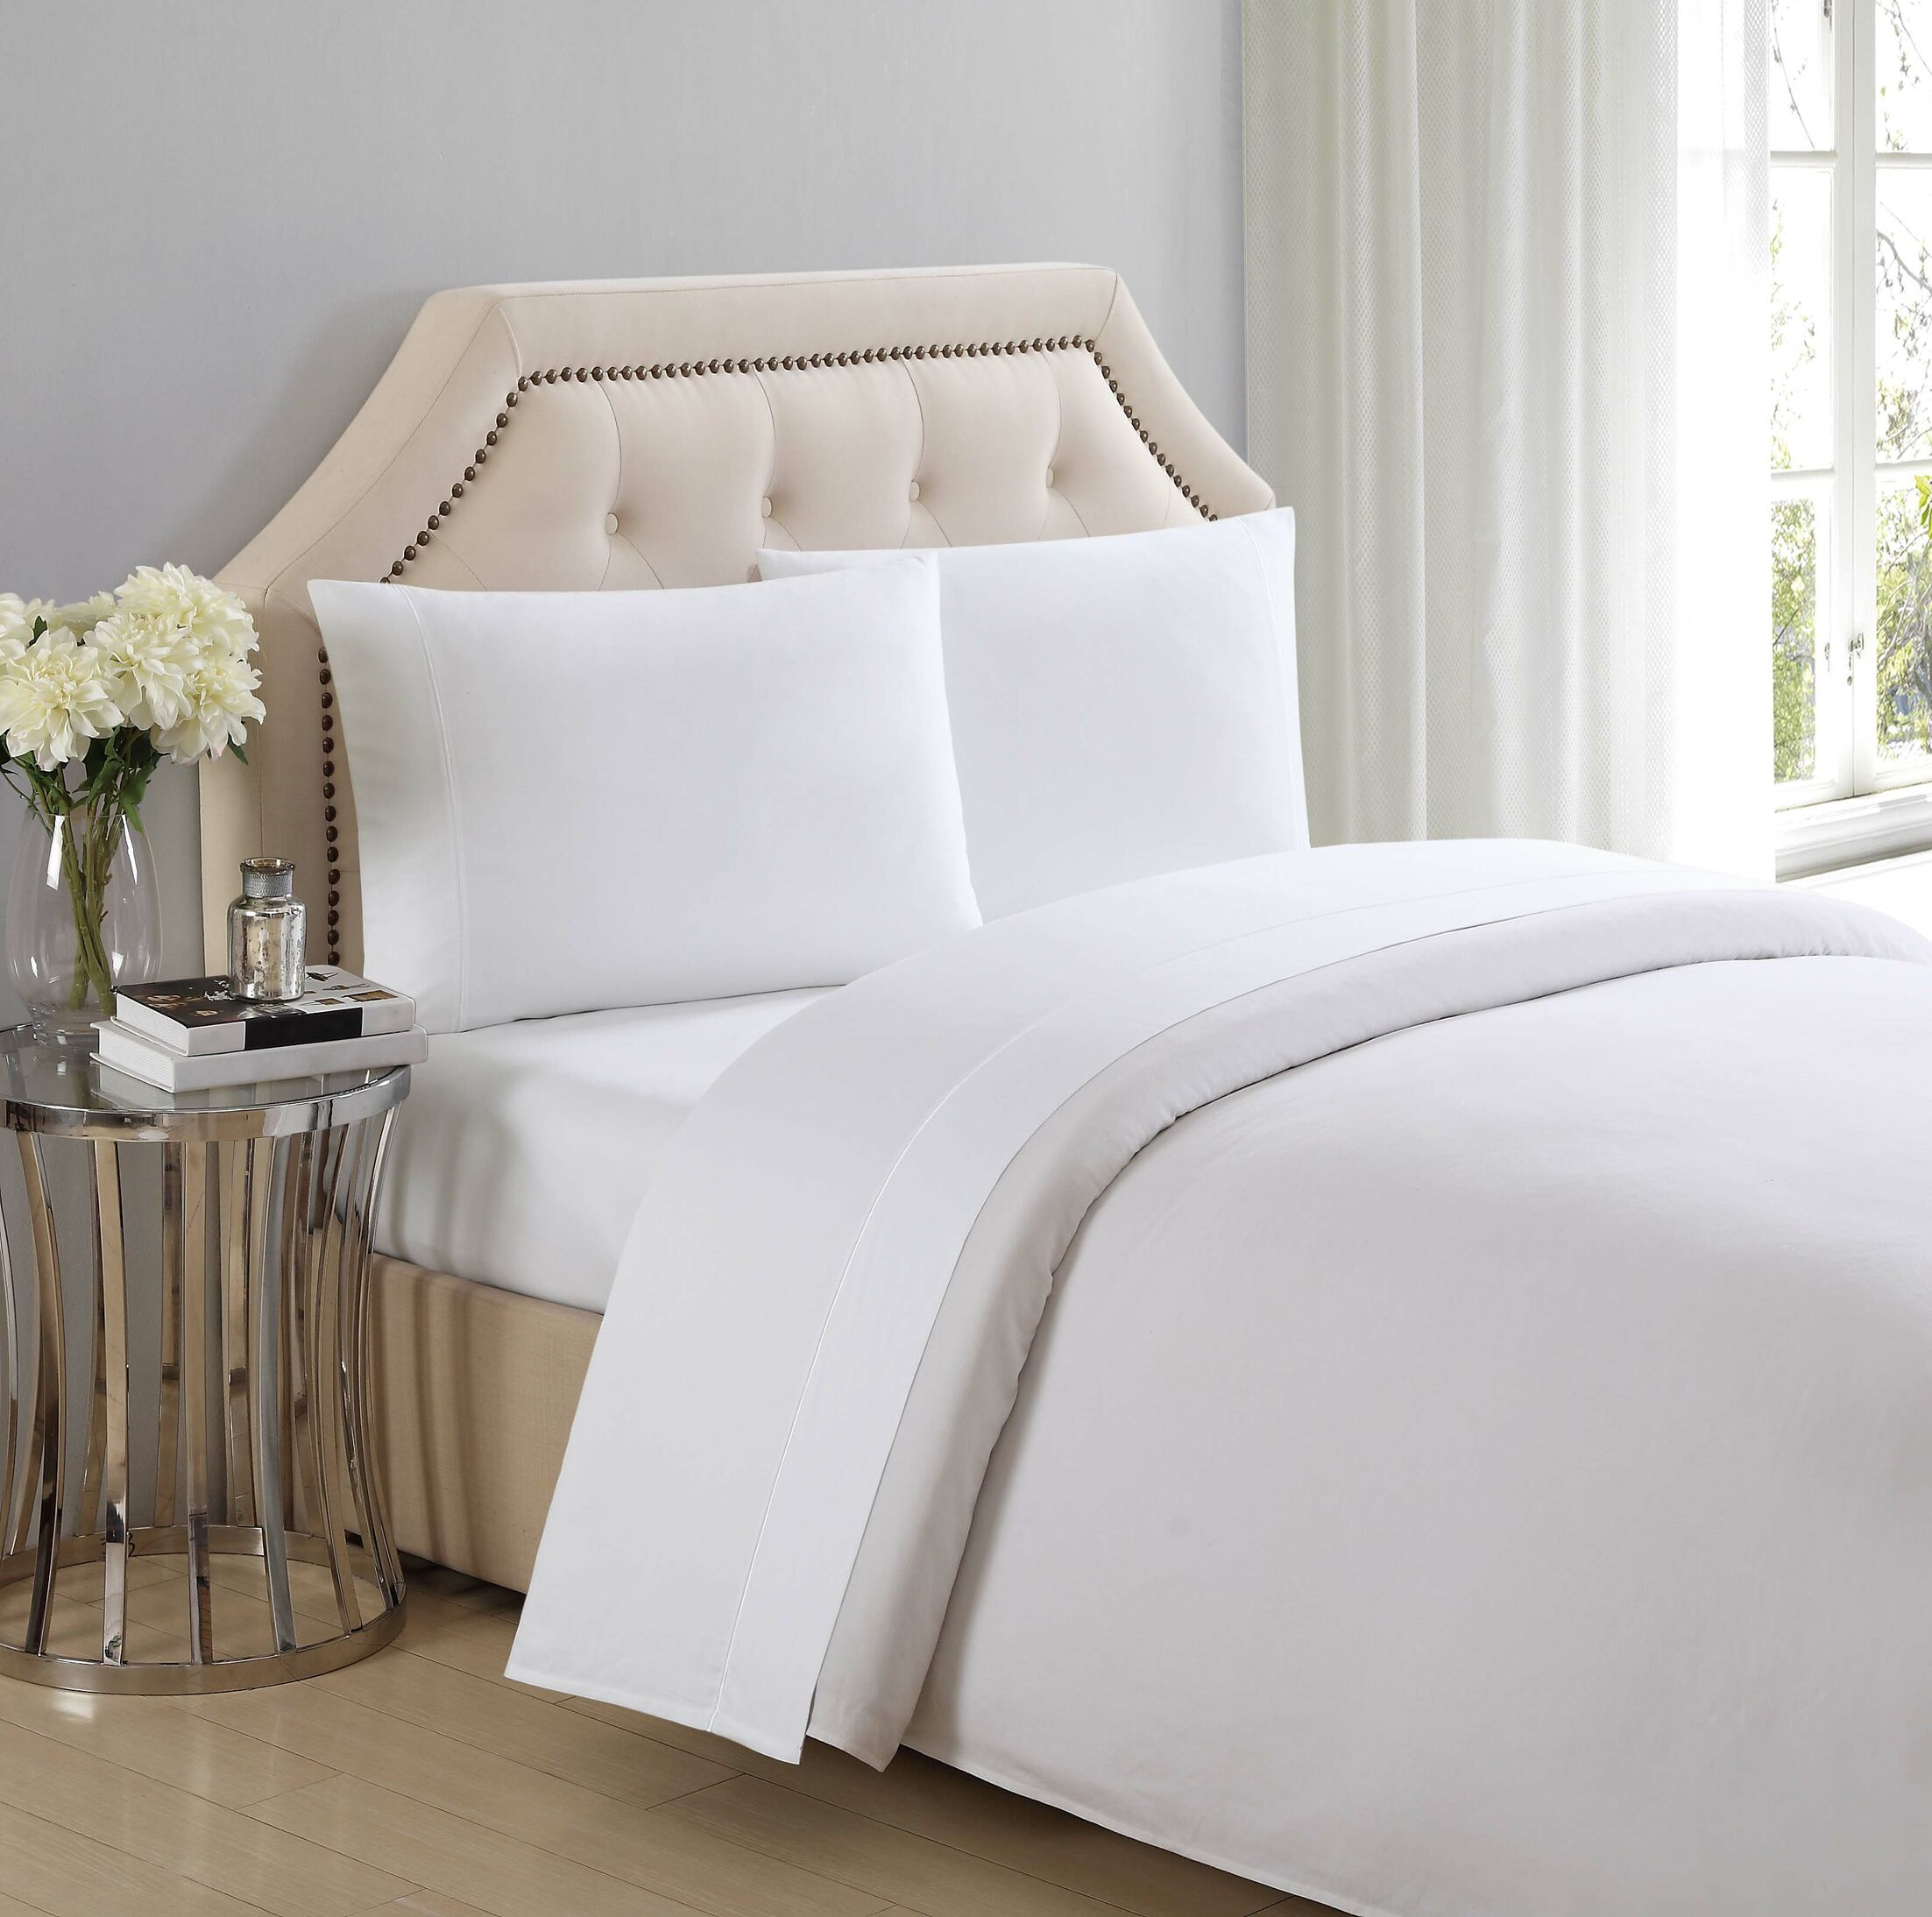 4 Piece 310 Thread Count Cotton Sheet Set Color: Bright White, Size: Queen